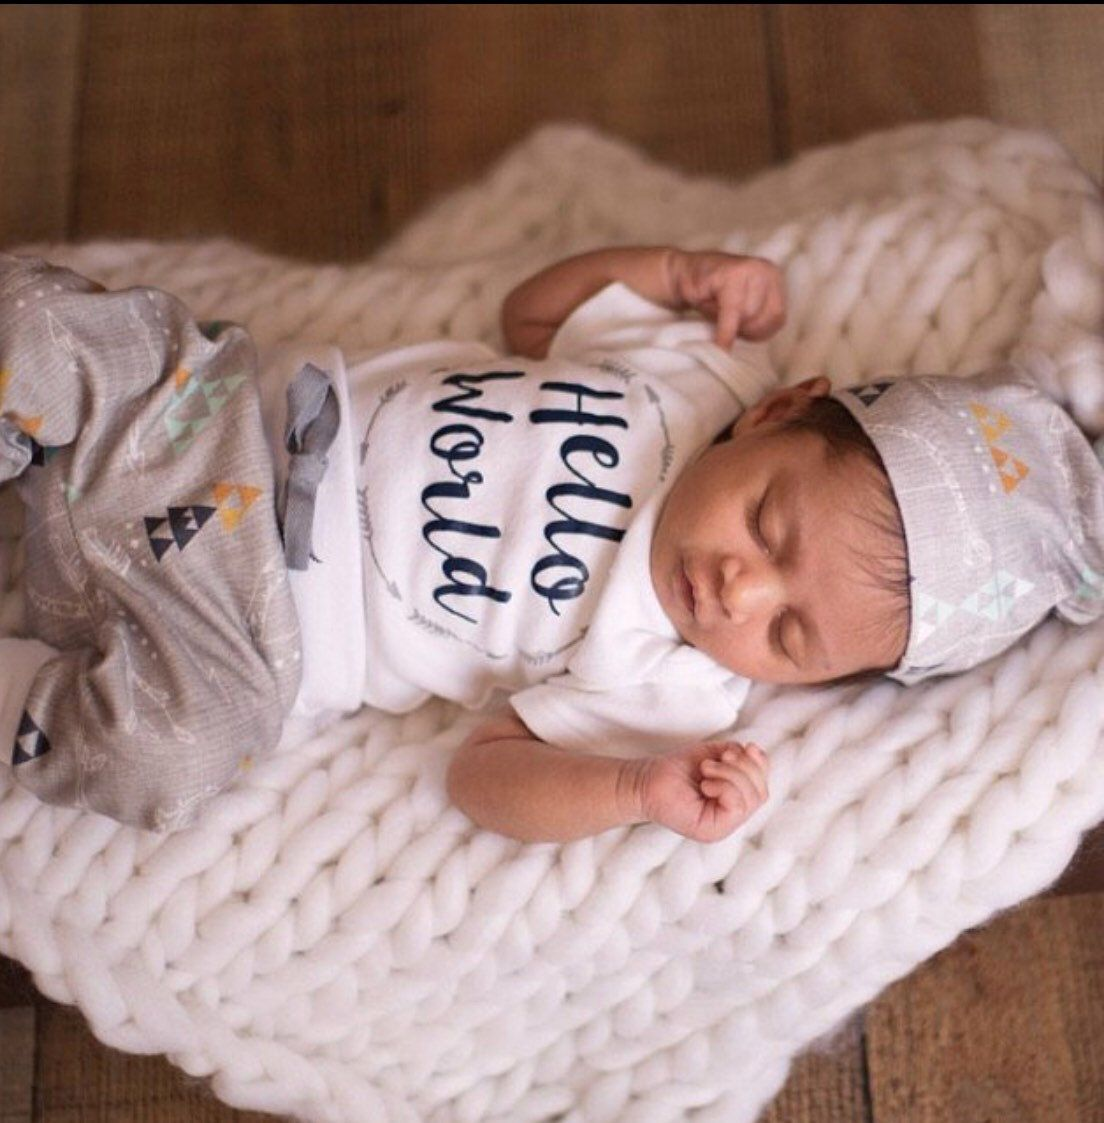 d37fac256cef newborn baby boy Newborn baby coming home outfit  going home outfit for boy  organic cotton newborn set by bibitibobitiboutique on Etsy